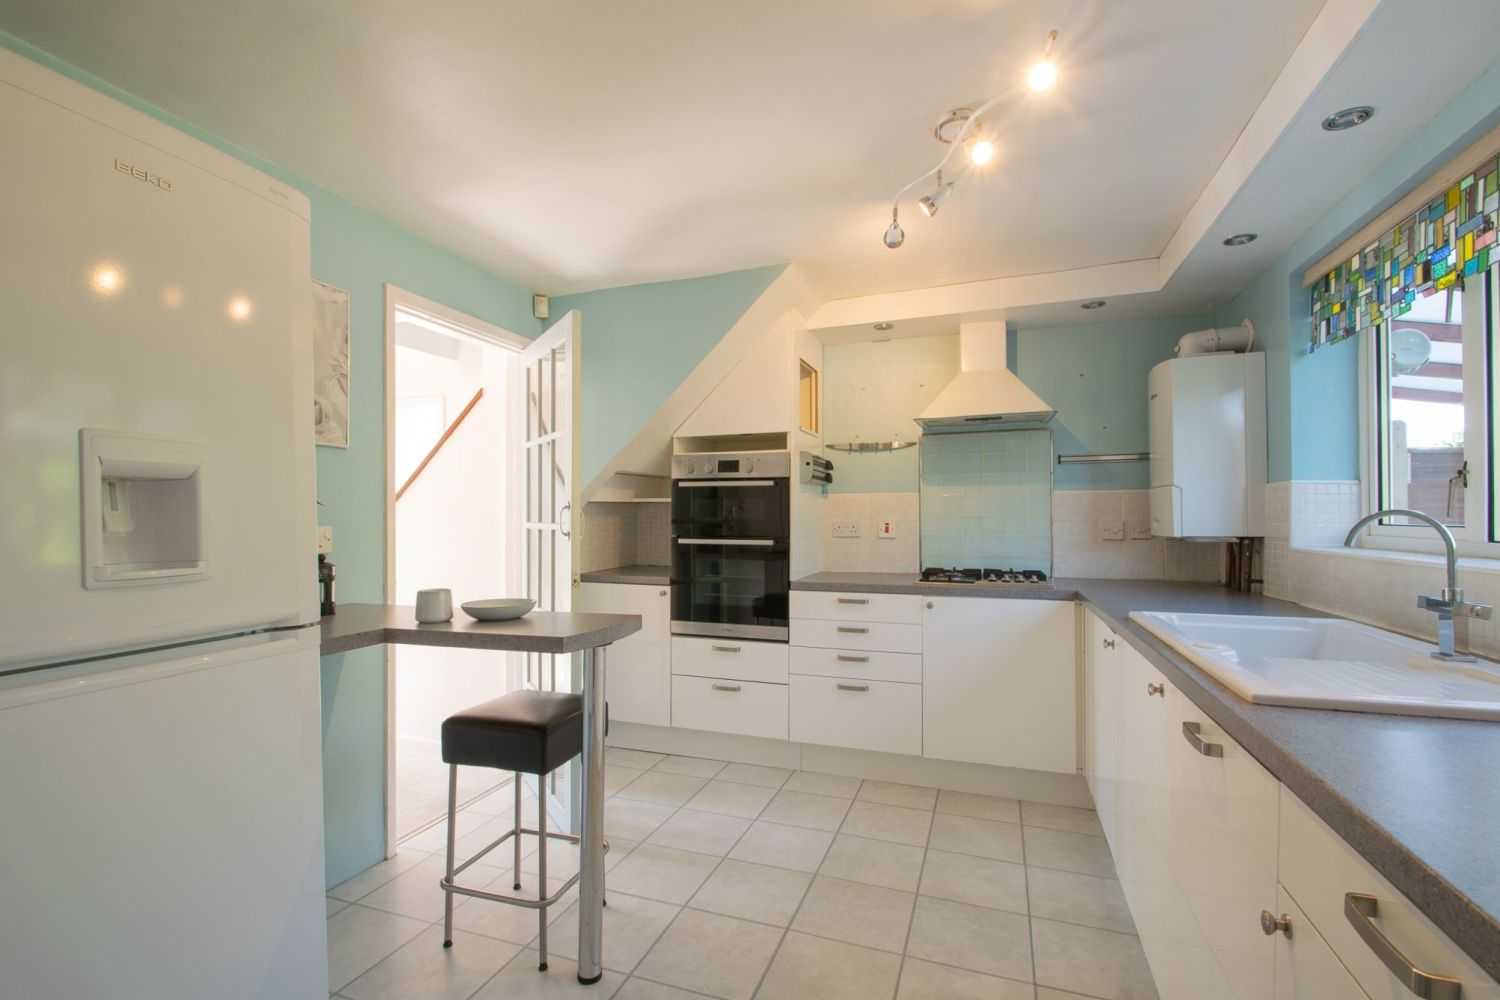 3 bed terraced for sale in Waverley Crescent, Romsley  - Property Image 5